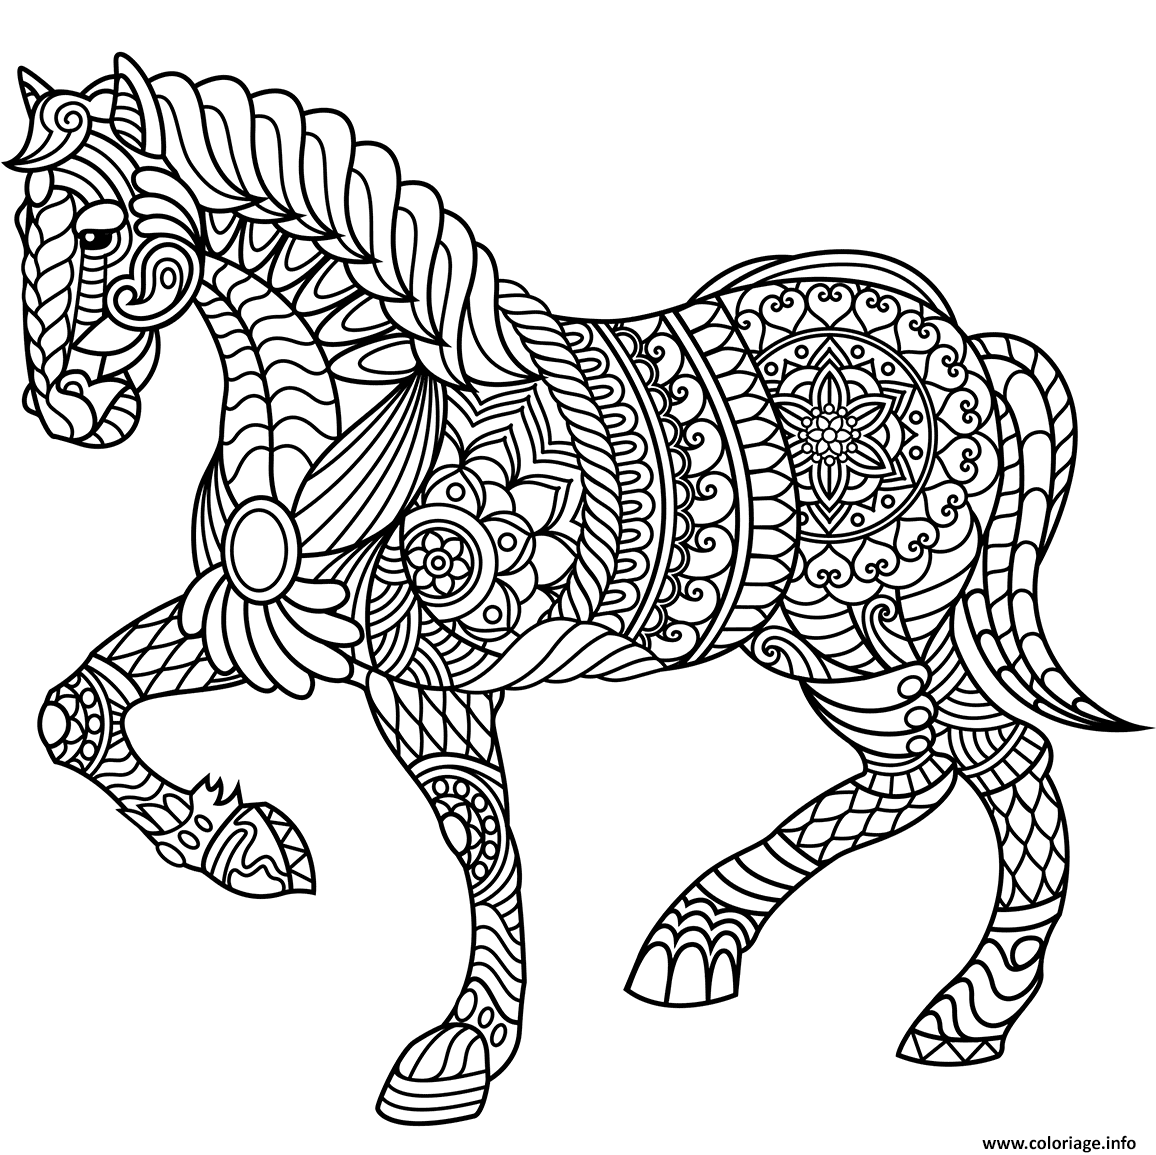 Coloriage Cheval Zen.Coloriage Cheval Zentangle Adulte Jecolorie Com